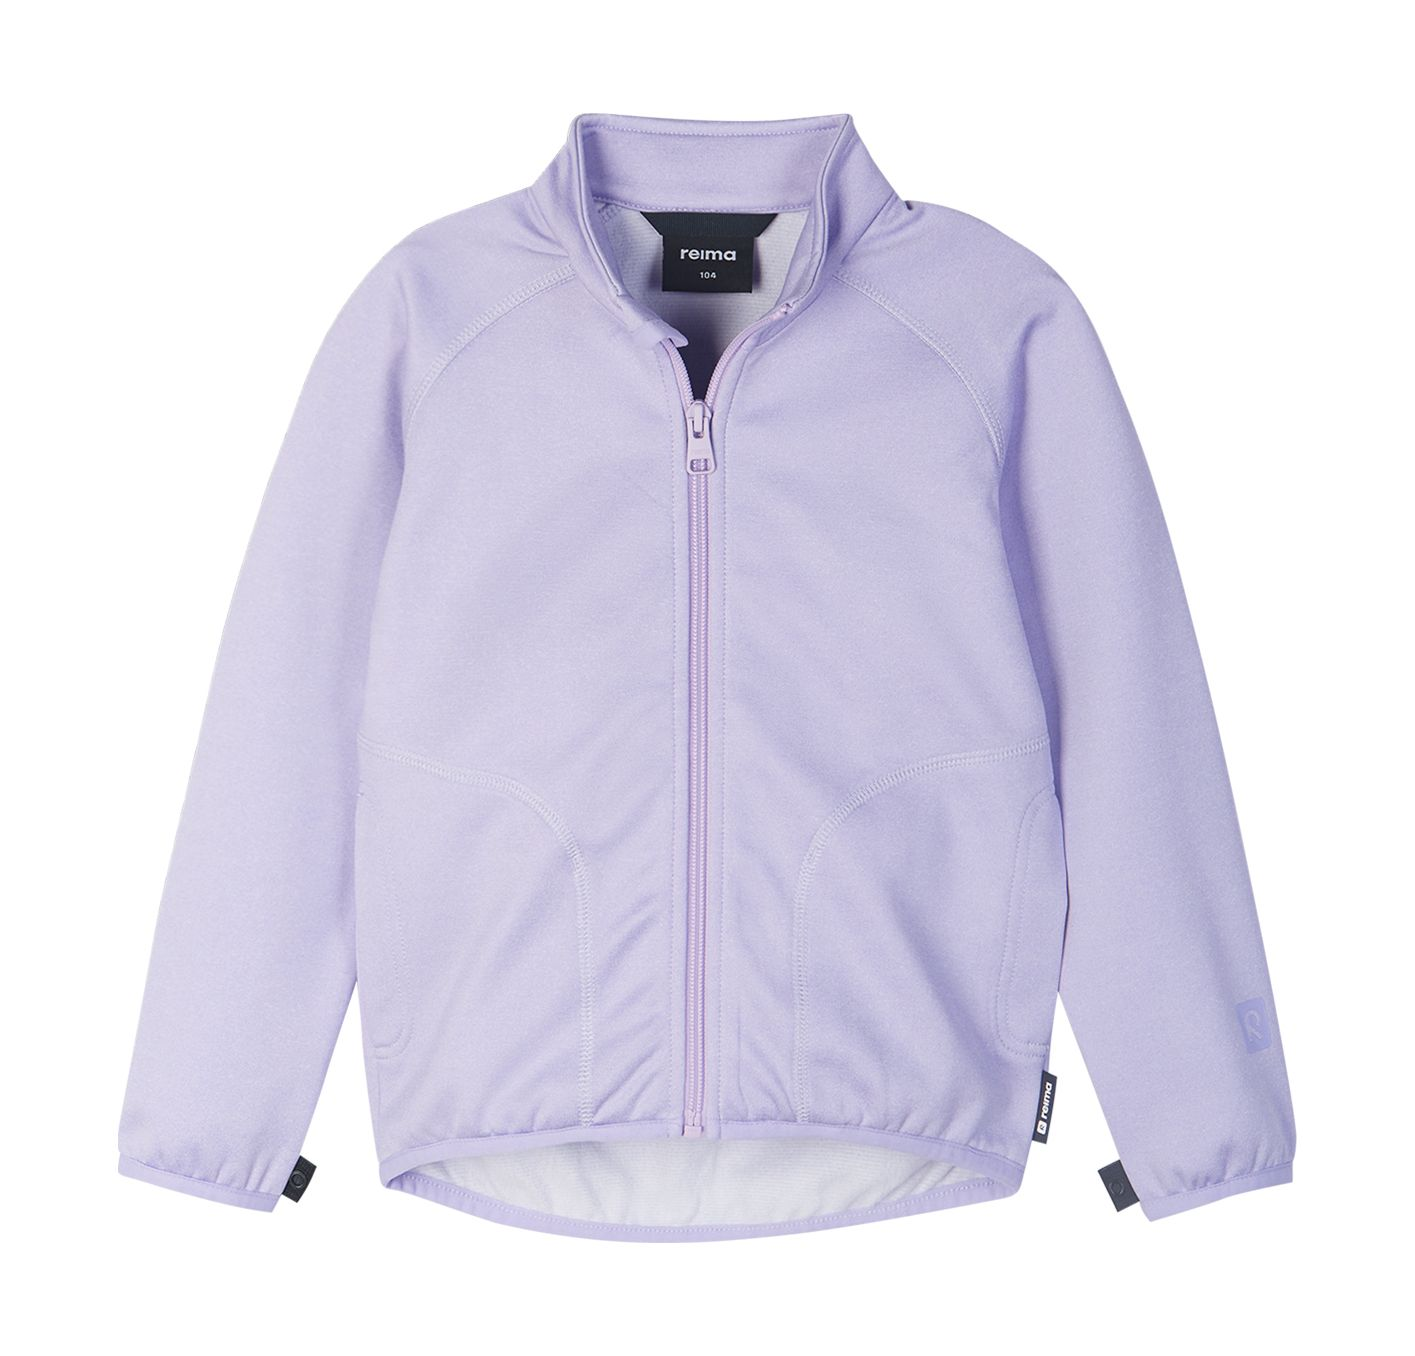 REIMA Toimiva Light Violet 98